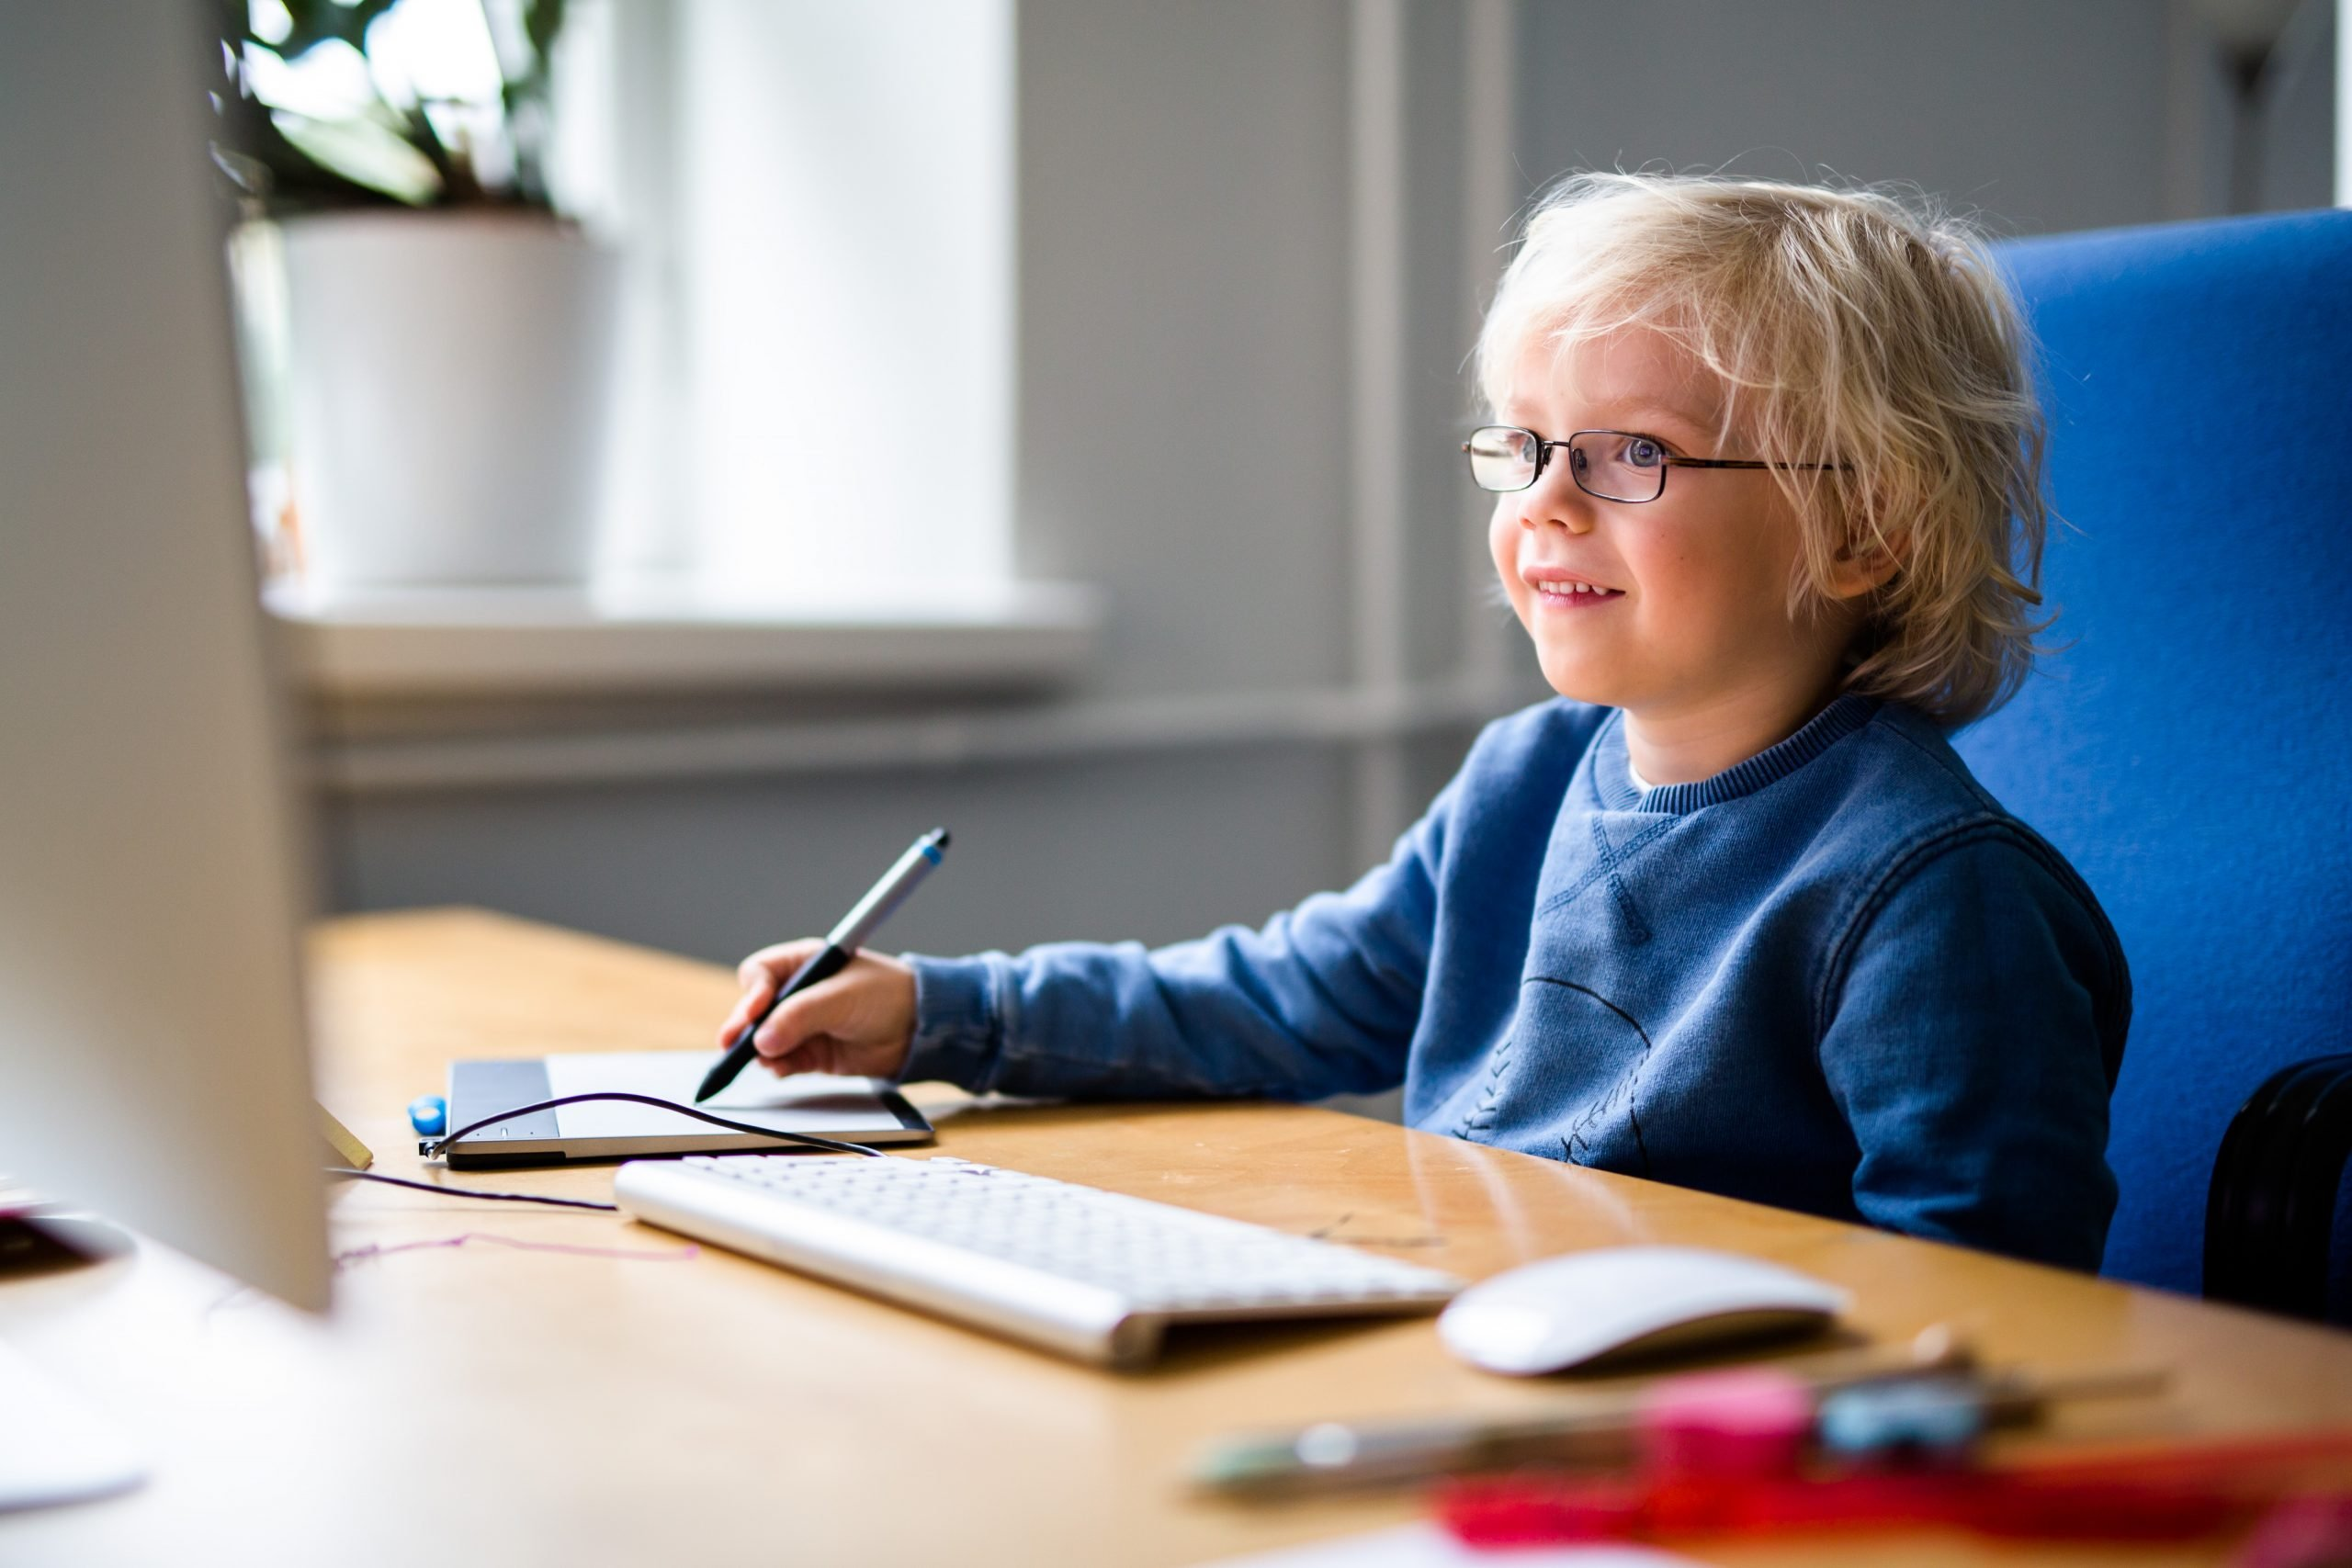 Boy learning at computer